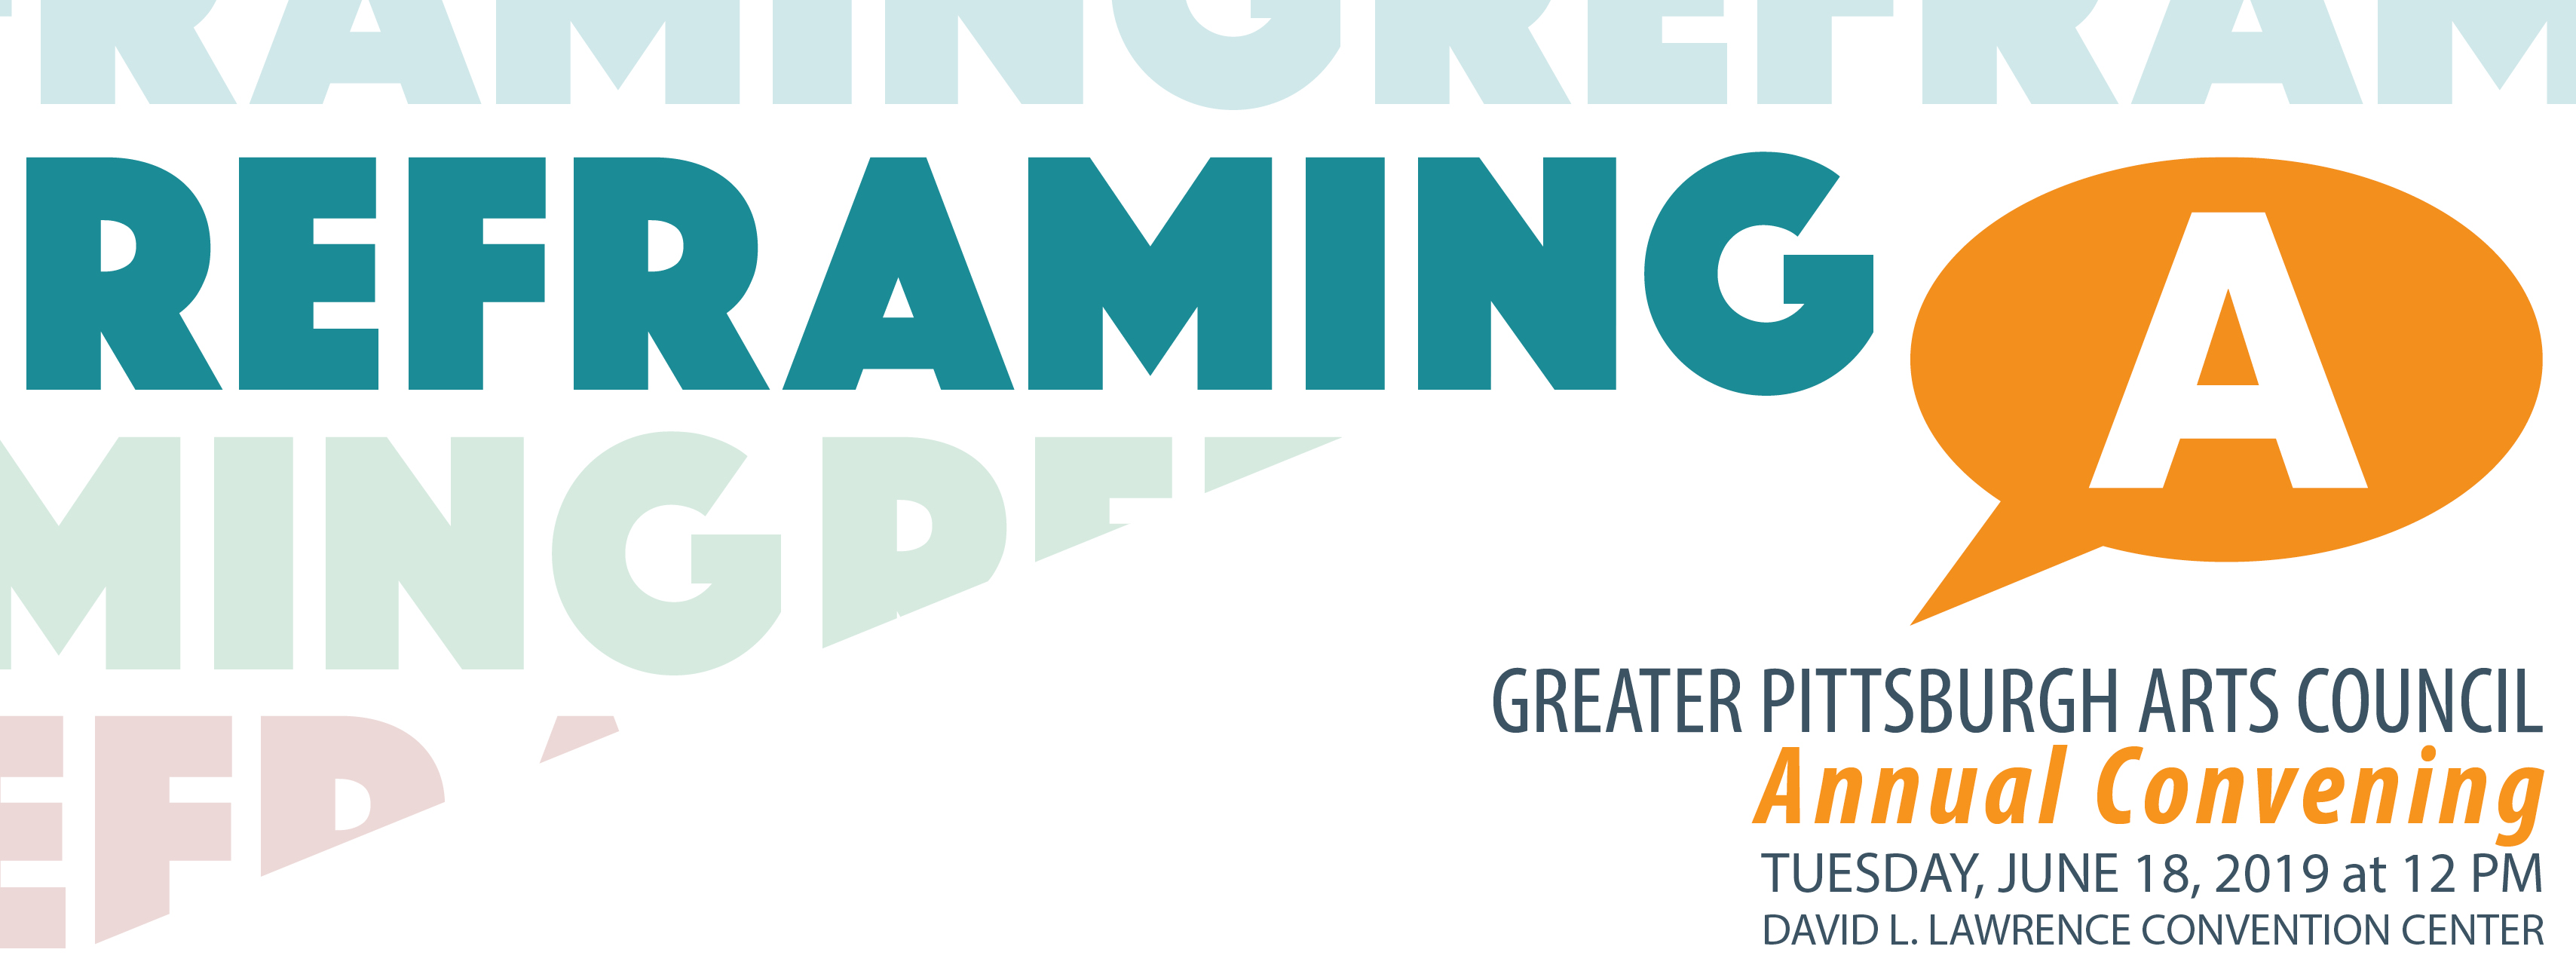 Tickets for Reframing: GPAC's Annual Convening in Pittsburgh from ShowClix